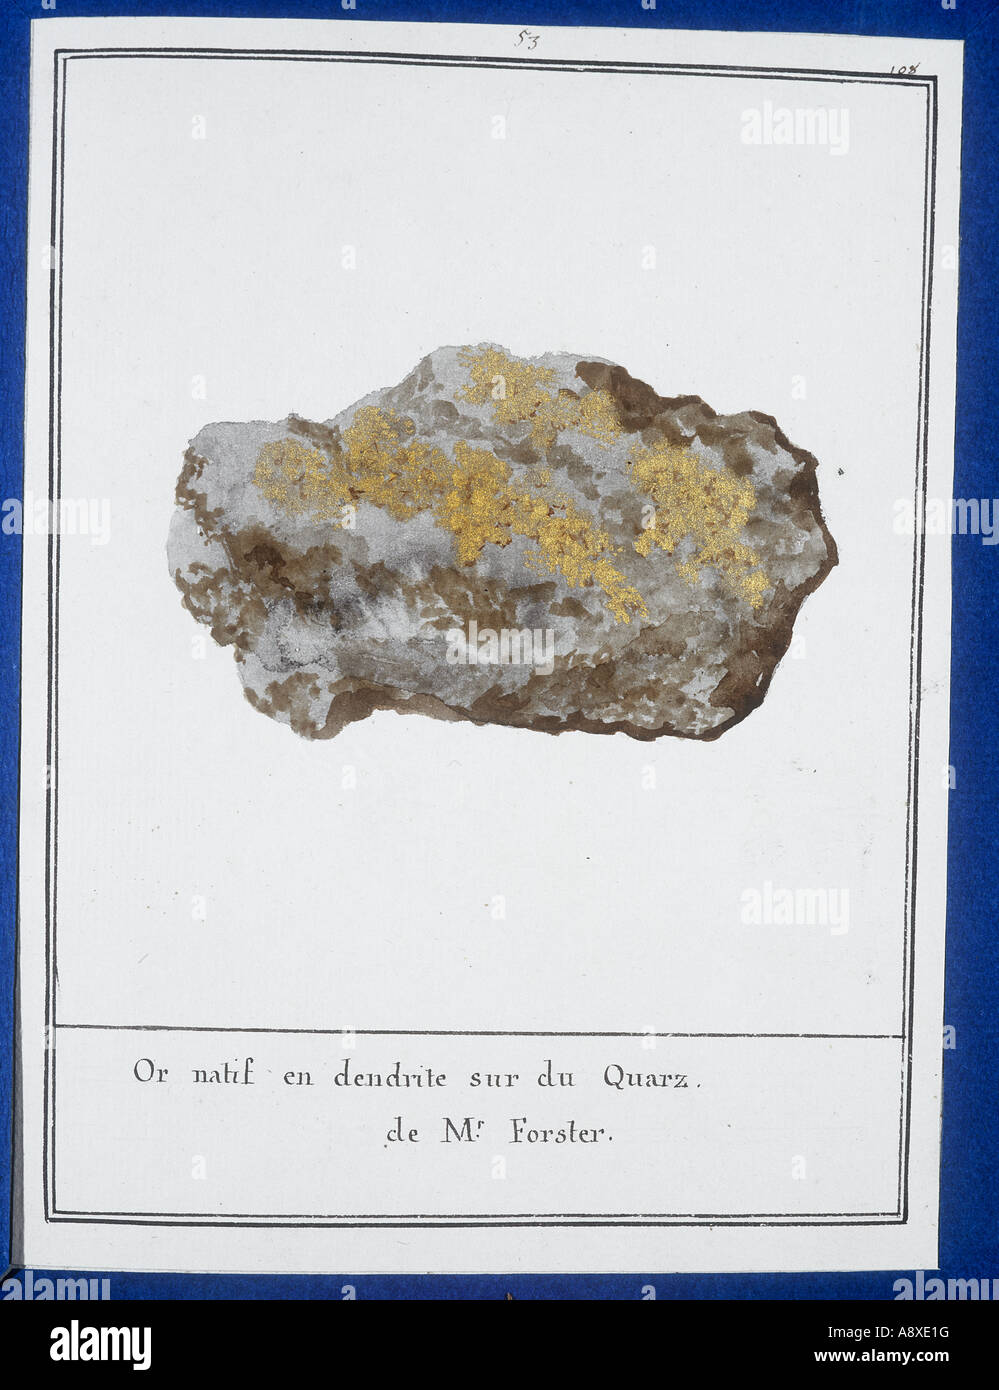 Plate 51 from Mineralogie by Swebach Desfontaines - Stock Image